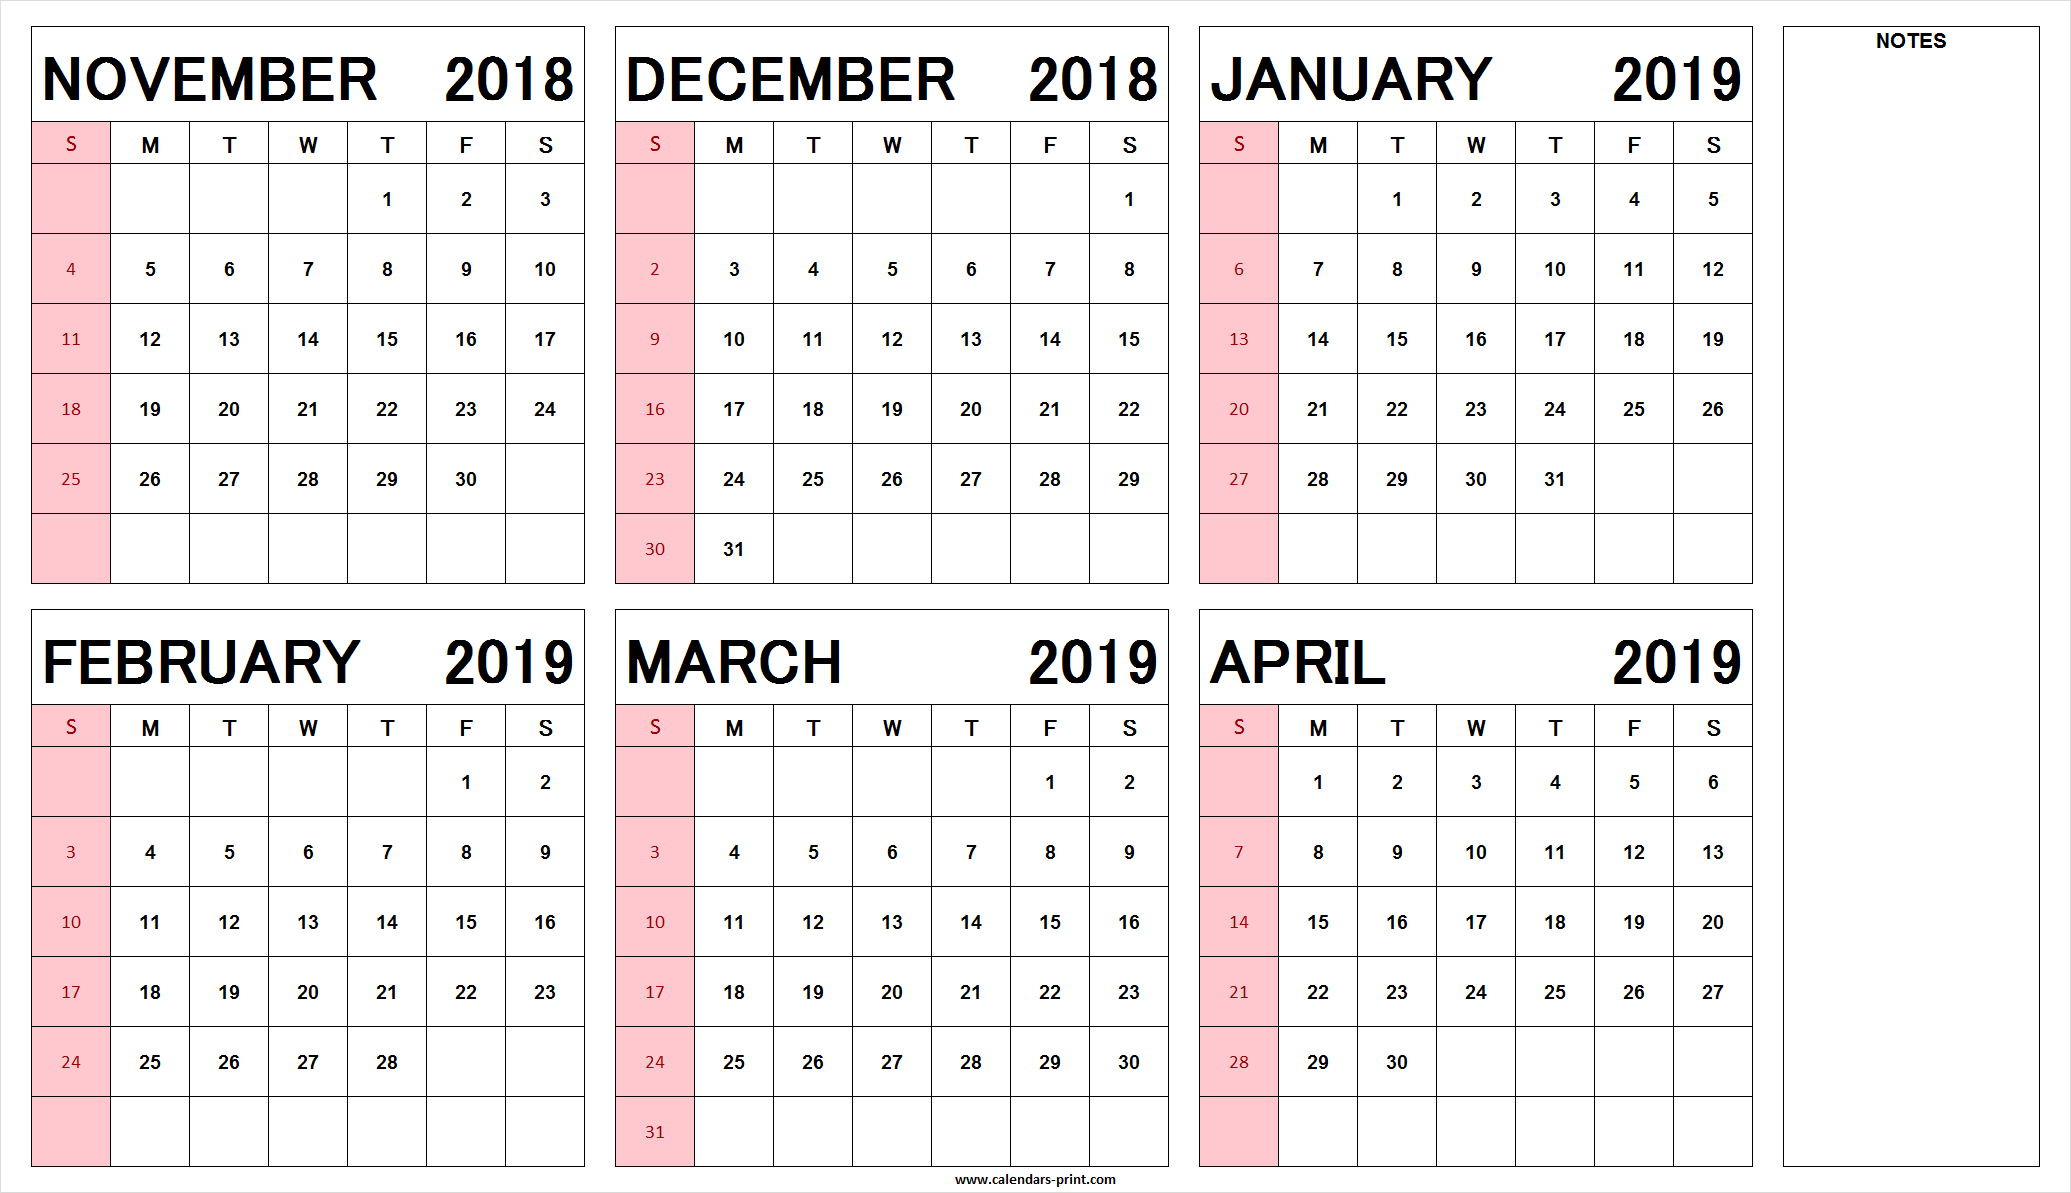 Half Year Calendar 2019 With Blank November 2018 To April Printable PDF JPG PNG